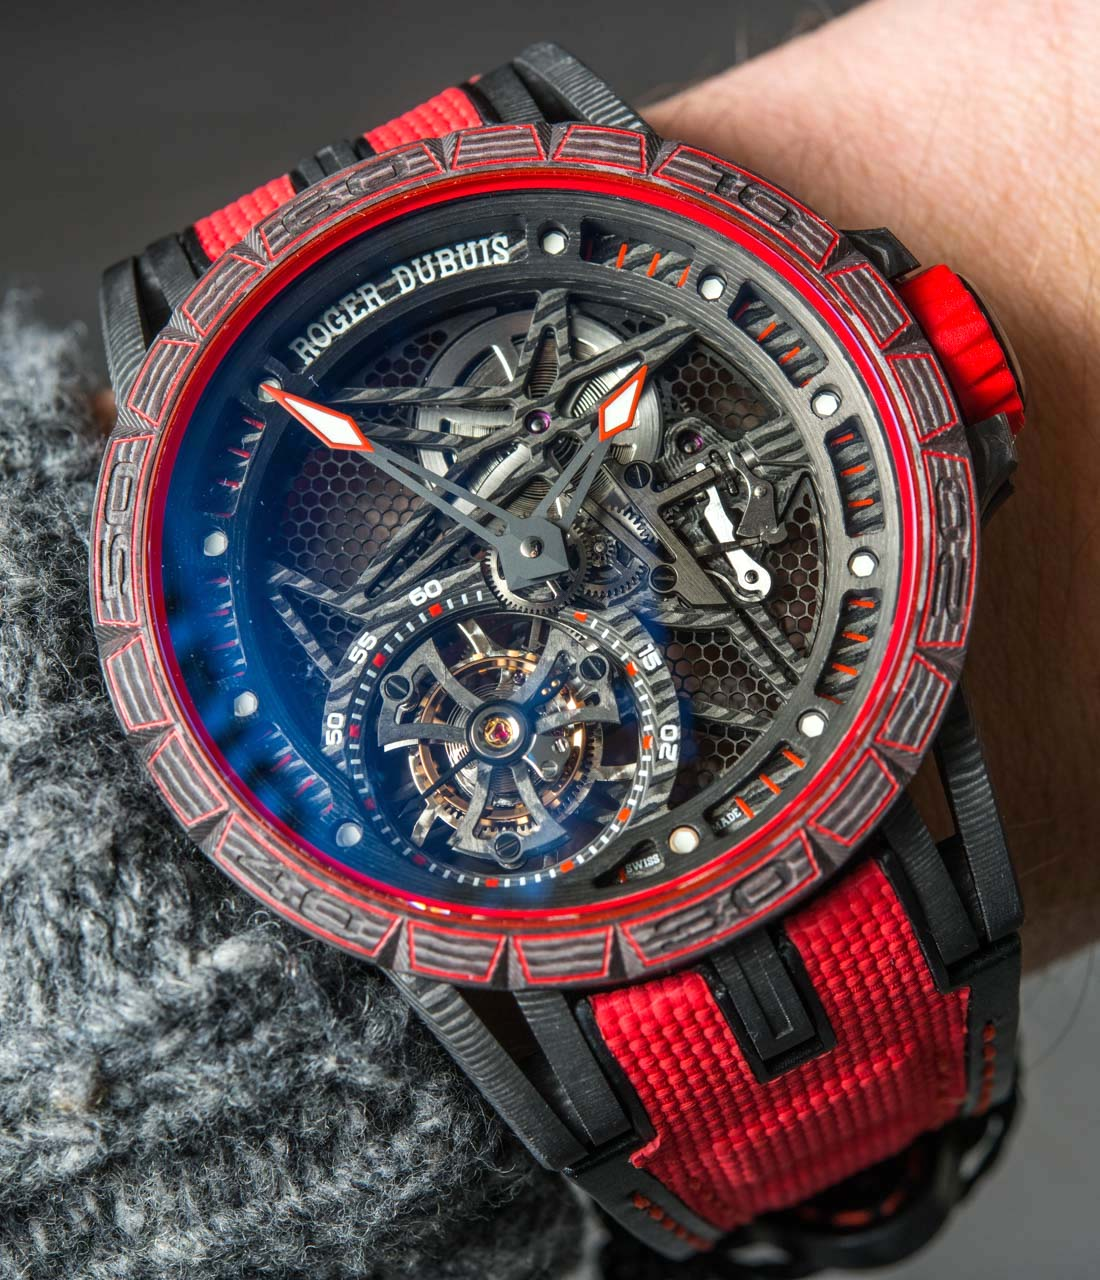 Roger Dubuis Excalibur Carbon Spider Watch Hands-On